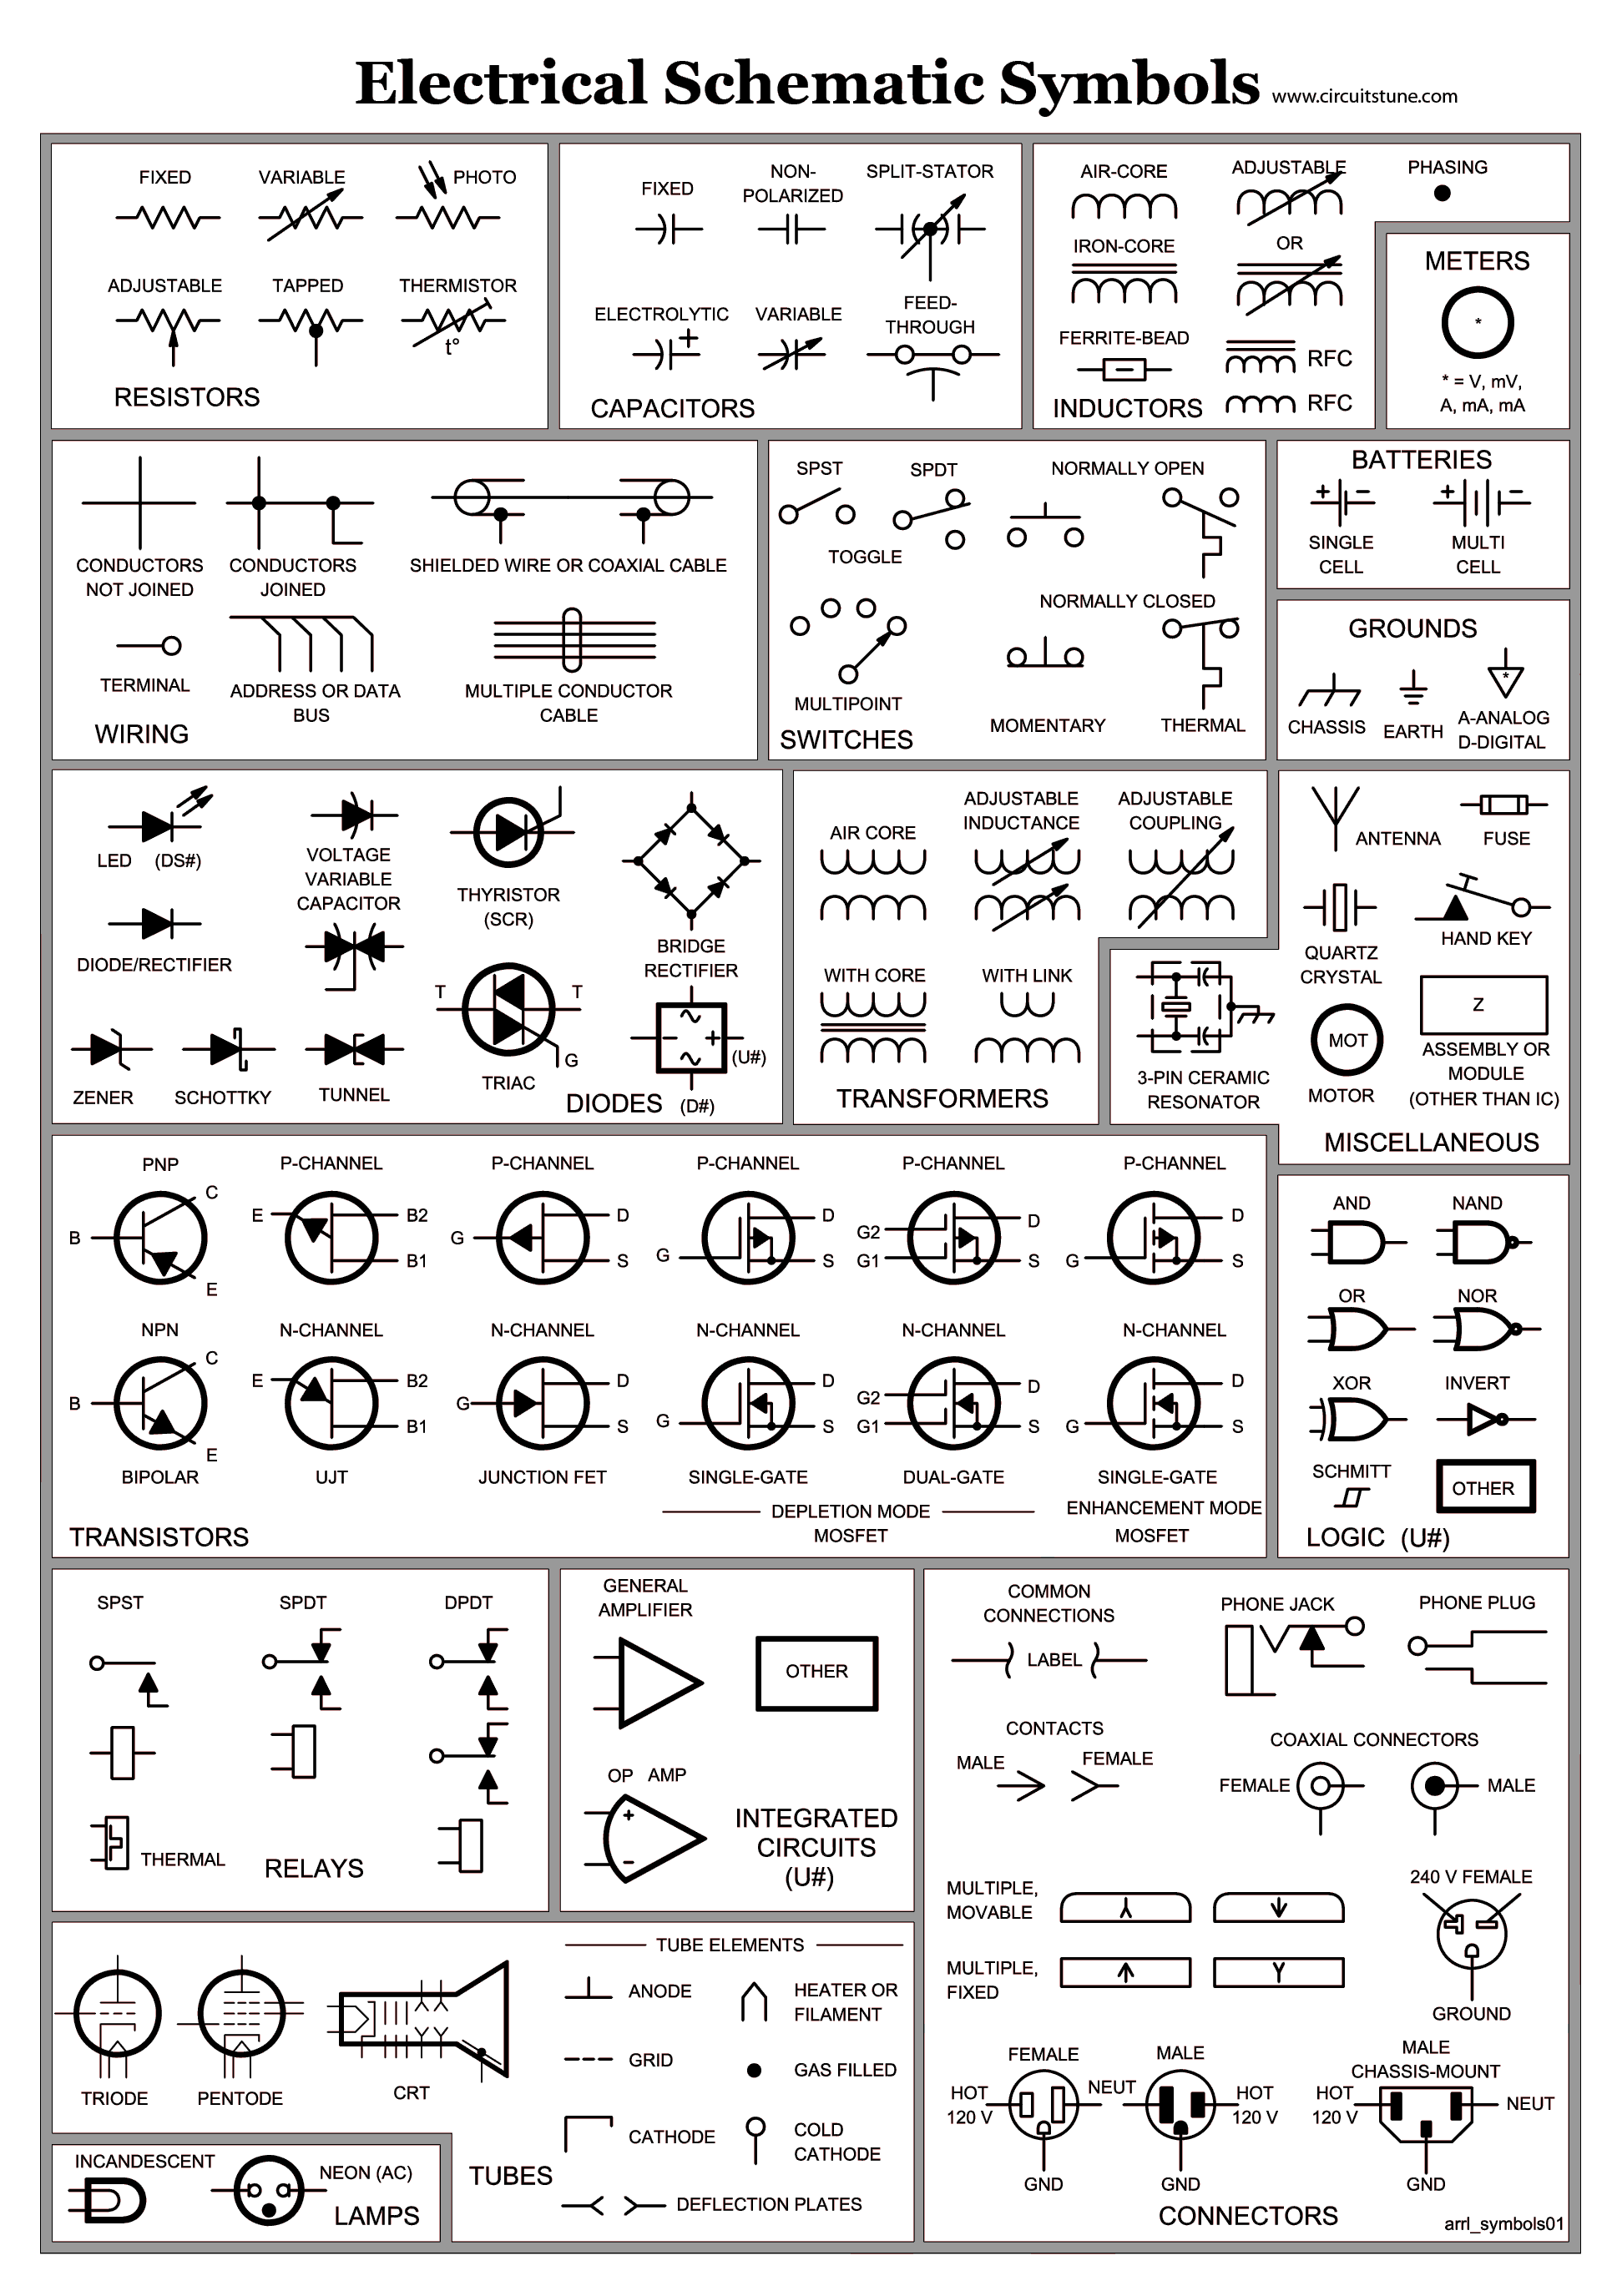 Home Wiring Diagram Symbols Jeep Jk Subwoofer Electrical Schematic Skinsquiggles